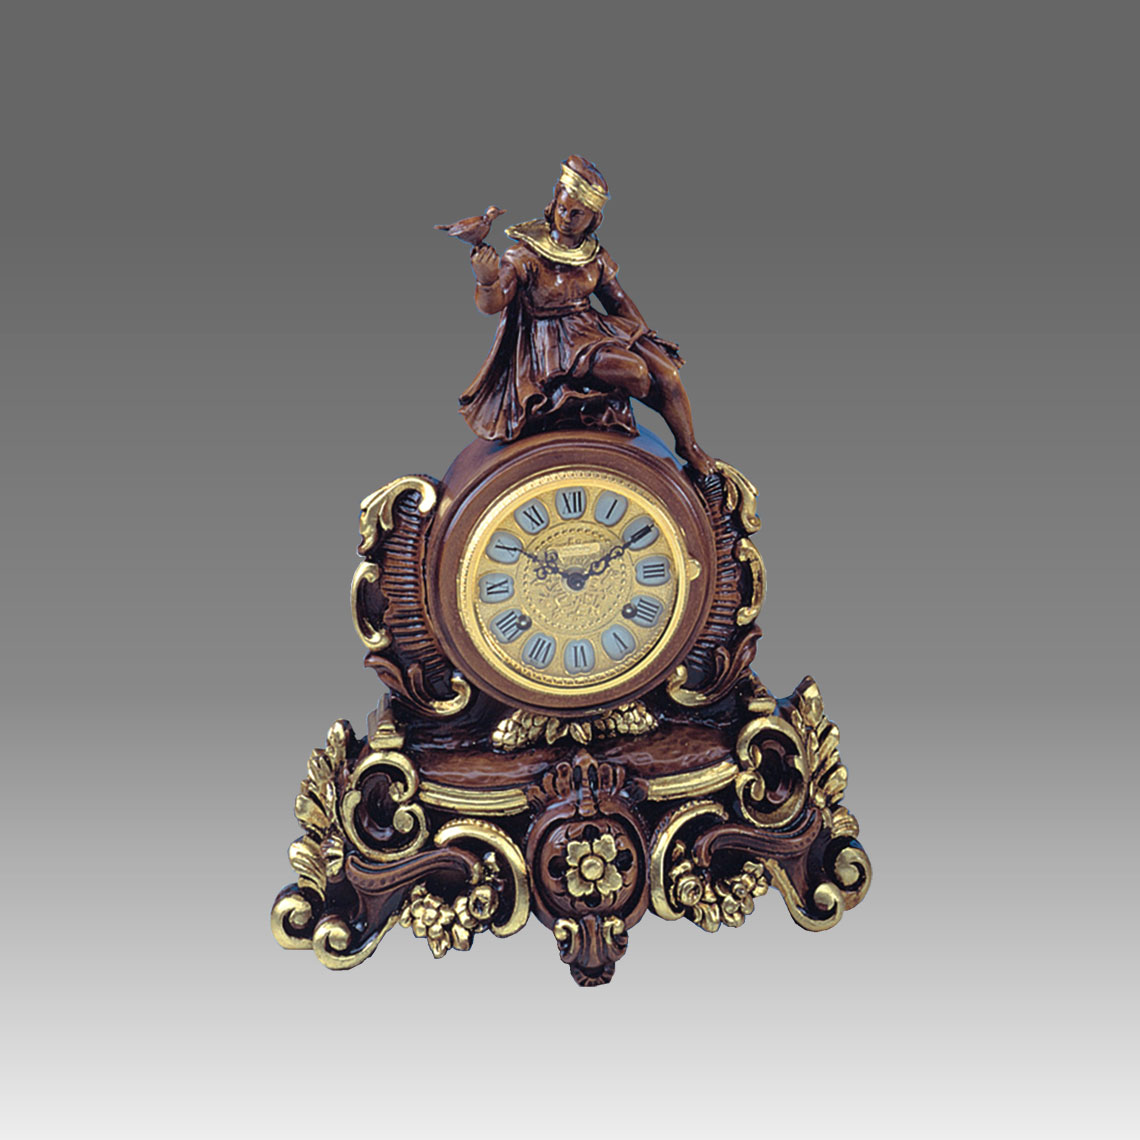 Mante Clock, Table Clock, Cimn Clock, Art.332/2 walnut with gold leaf - Bim Bam melody on Bells, gilt gold round dial